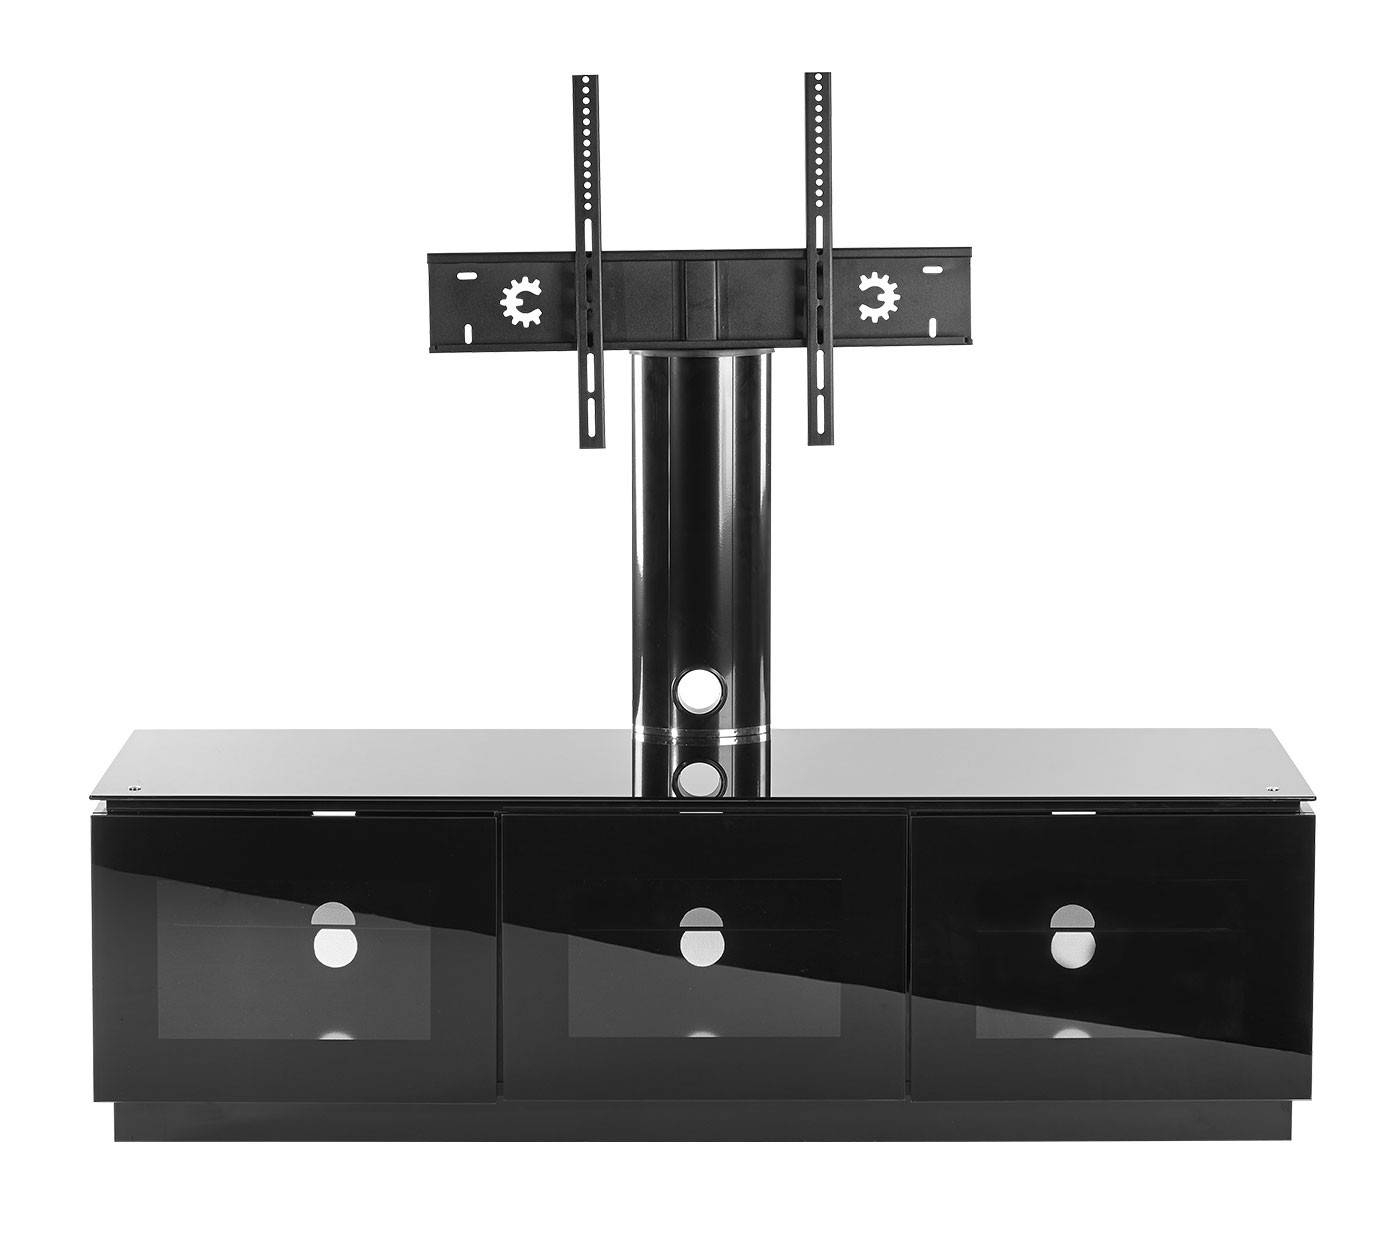 Black Tv Cabinet With Mount For Up To 65 Inch Tv | Mmt-D1500-Xarm within Black Tv Cabinets With Doors (Image 7 of 15)